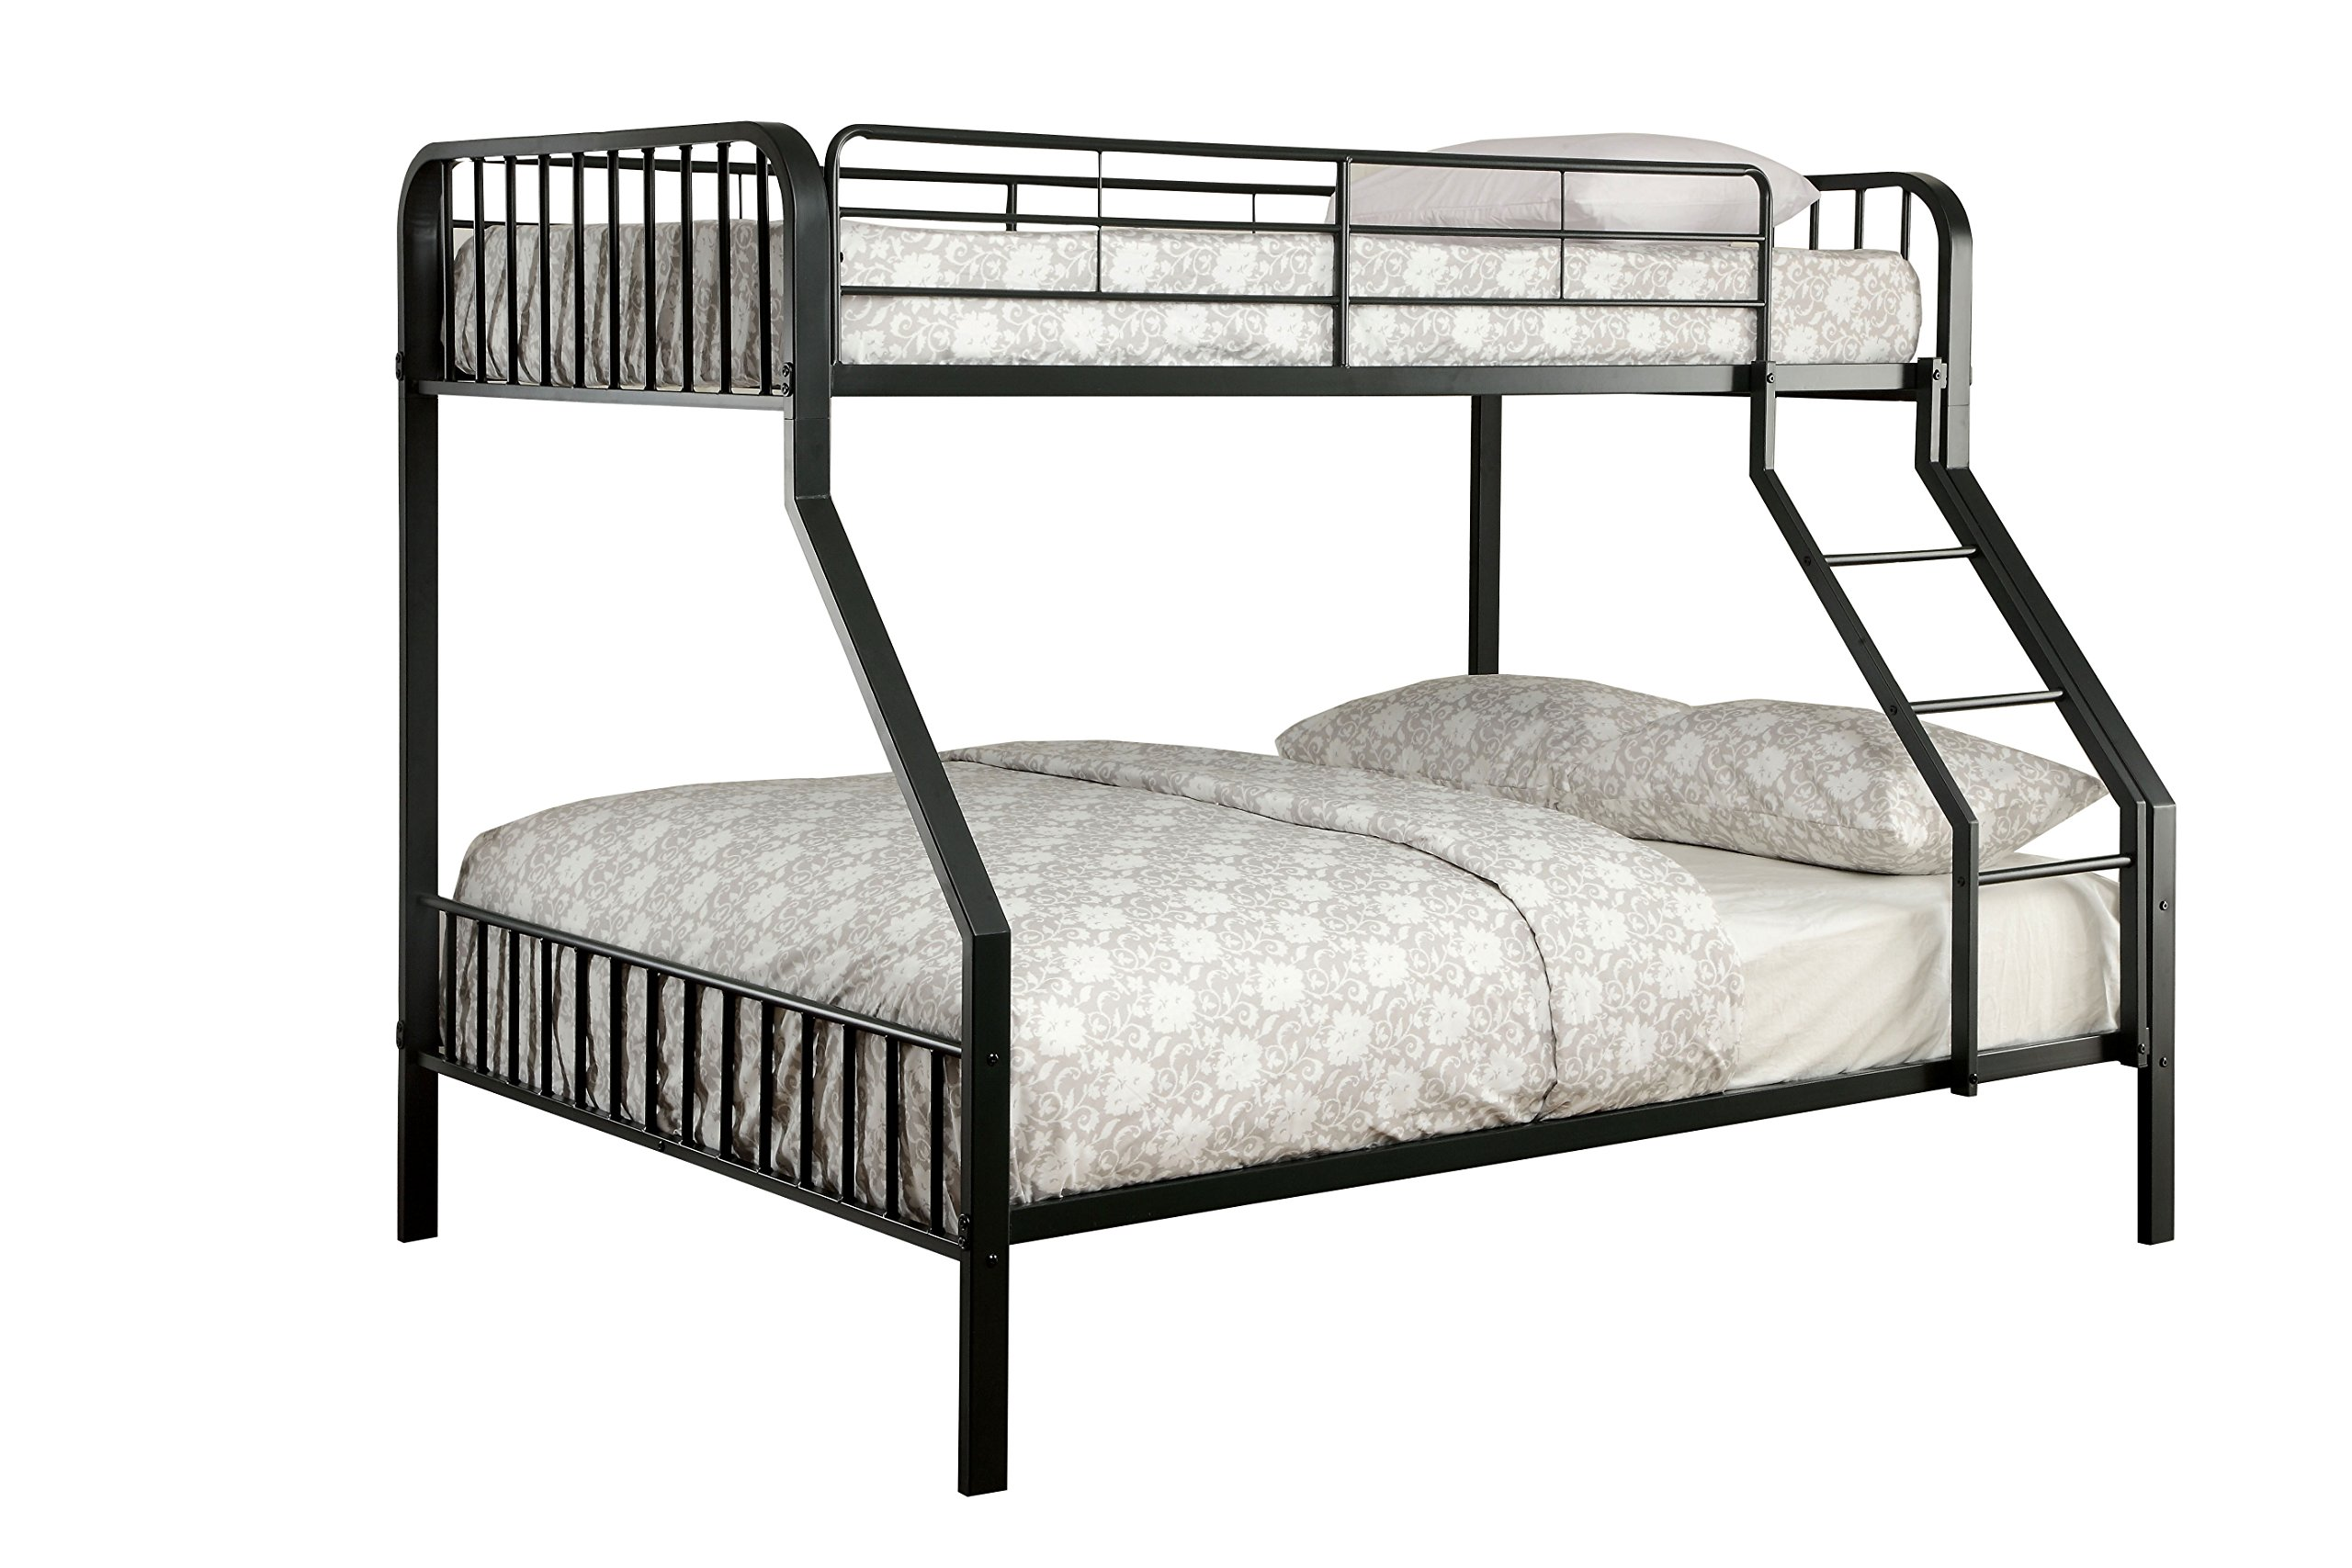 Furniture of America Colton Modern Metal Bunk Bed, Twin/Full, Black by Furniture of America